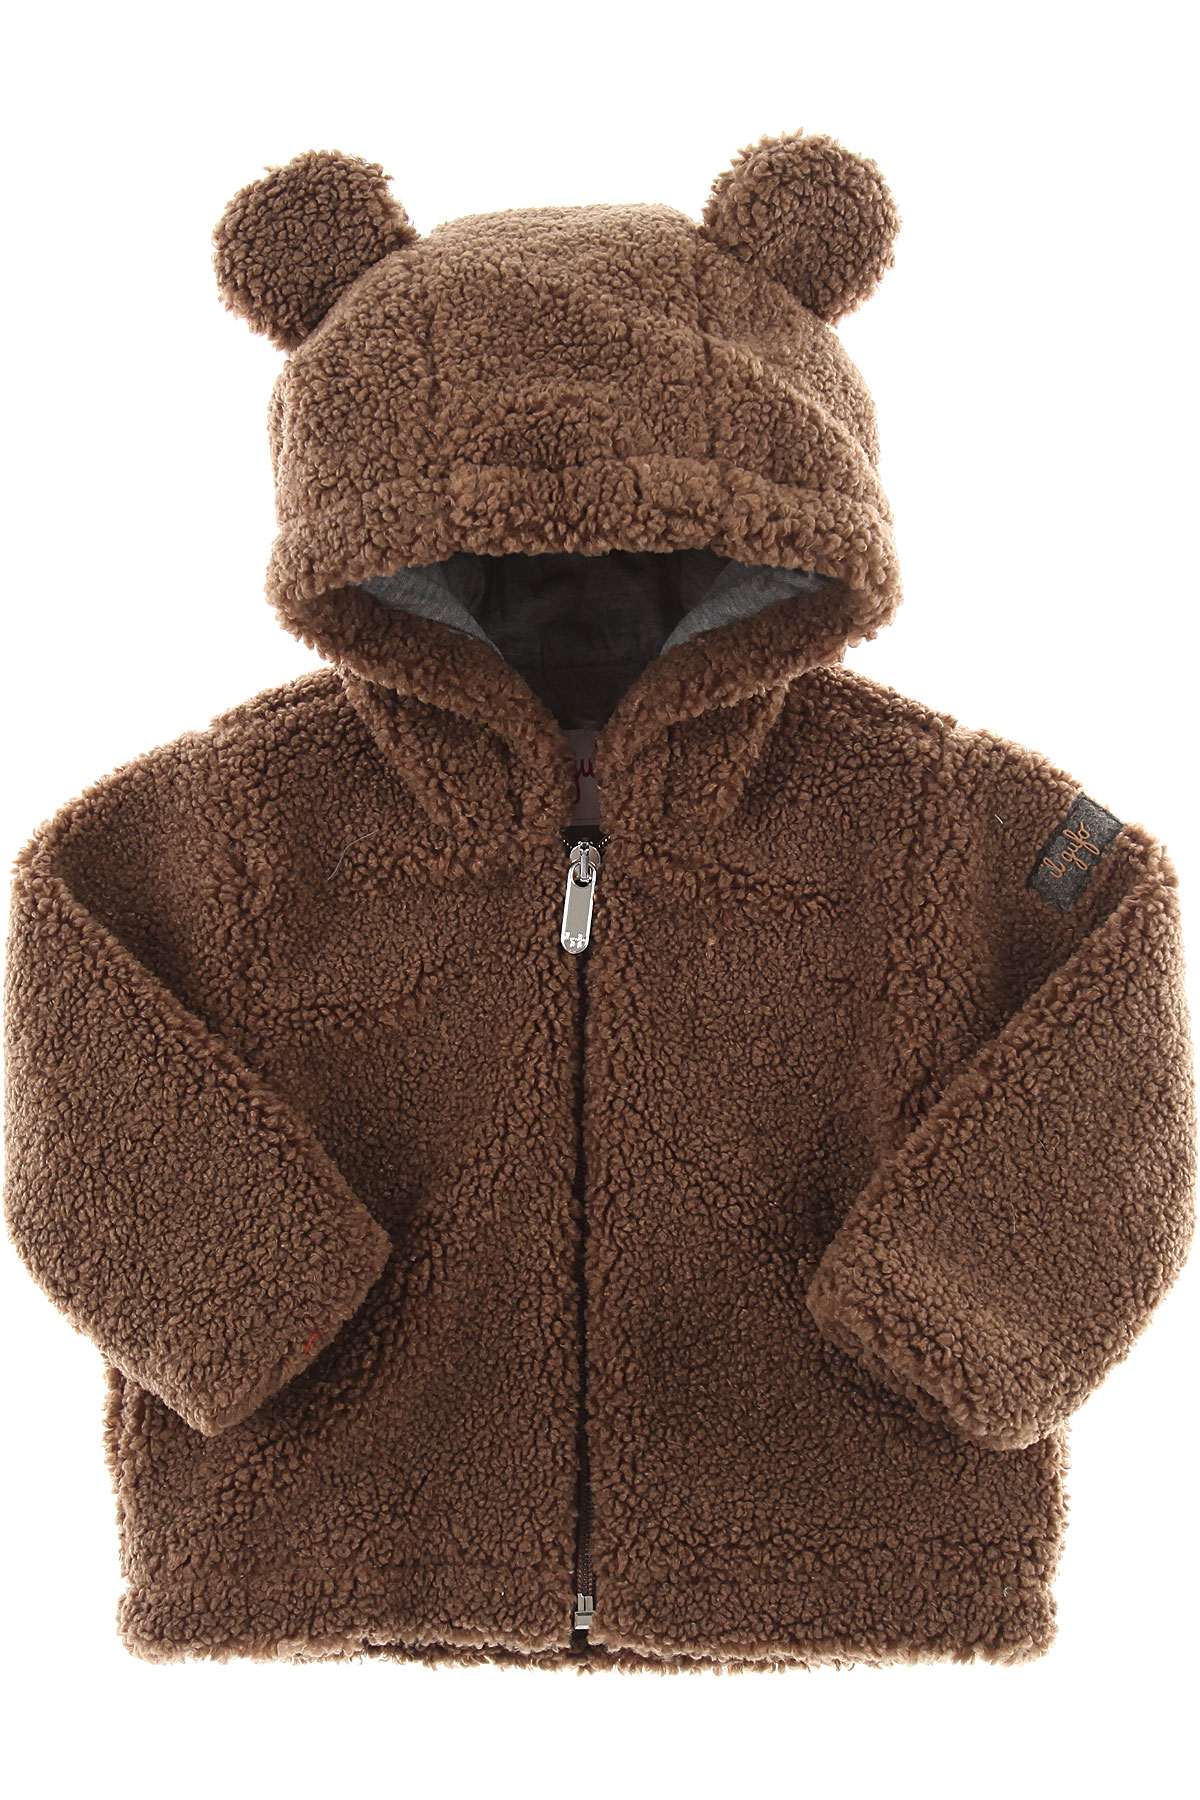 Image of Il Gufo Baby Jacket for Girls, Brown, polyester, 2017, 12M 18M